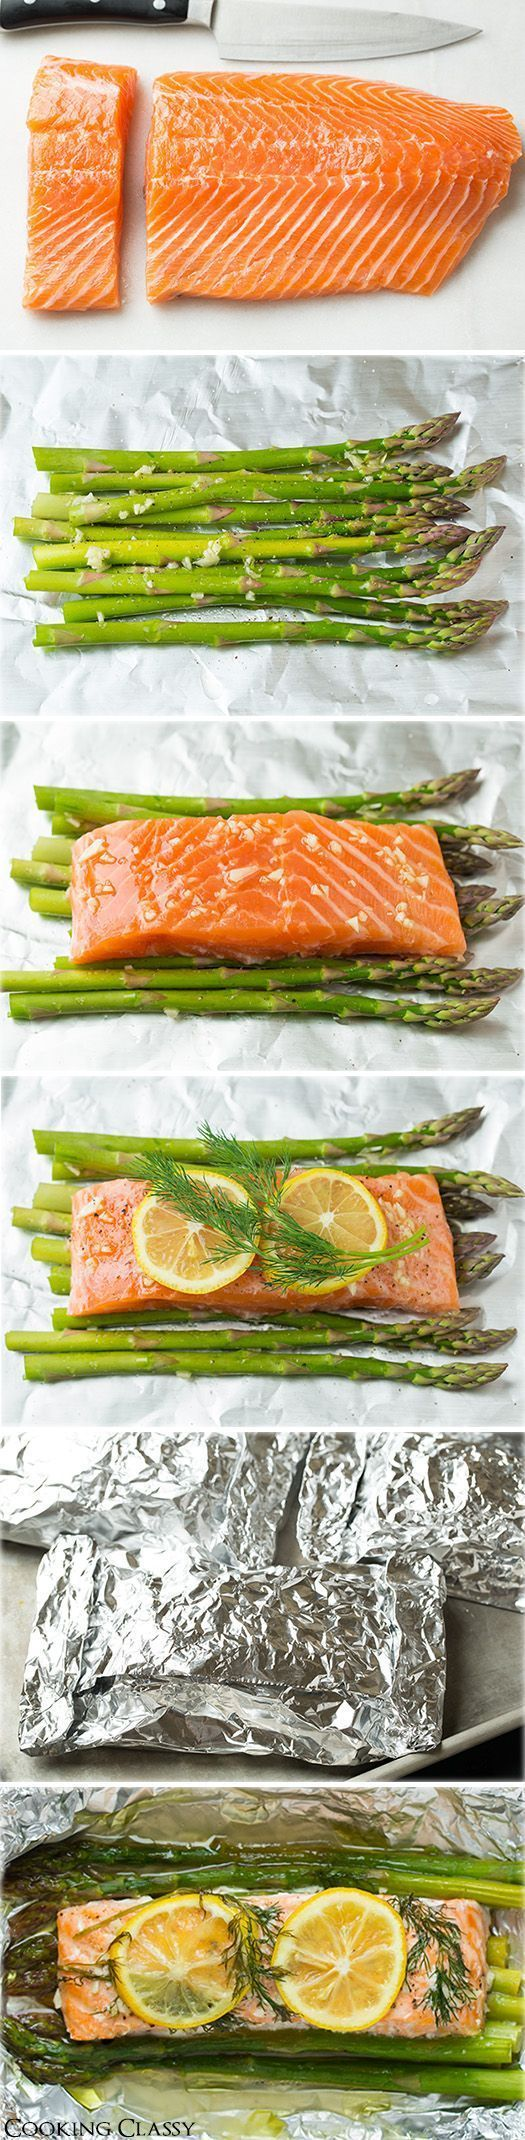 Baked Salmon and Asparagus in Foil - this is one of the easiest dinners ever  it tastes amazing  it's perfectly healthy and clean up is a breeze! Can't wait to try this!